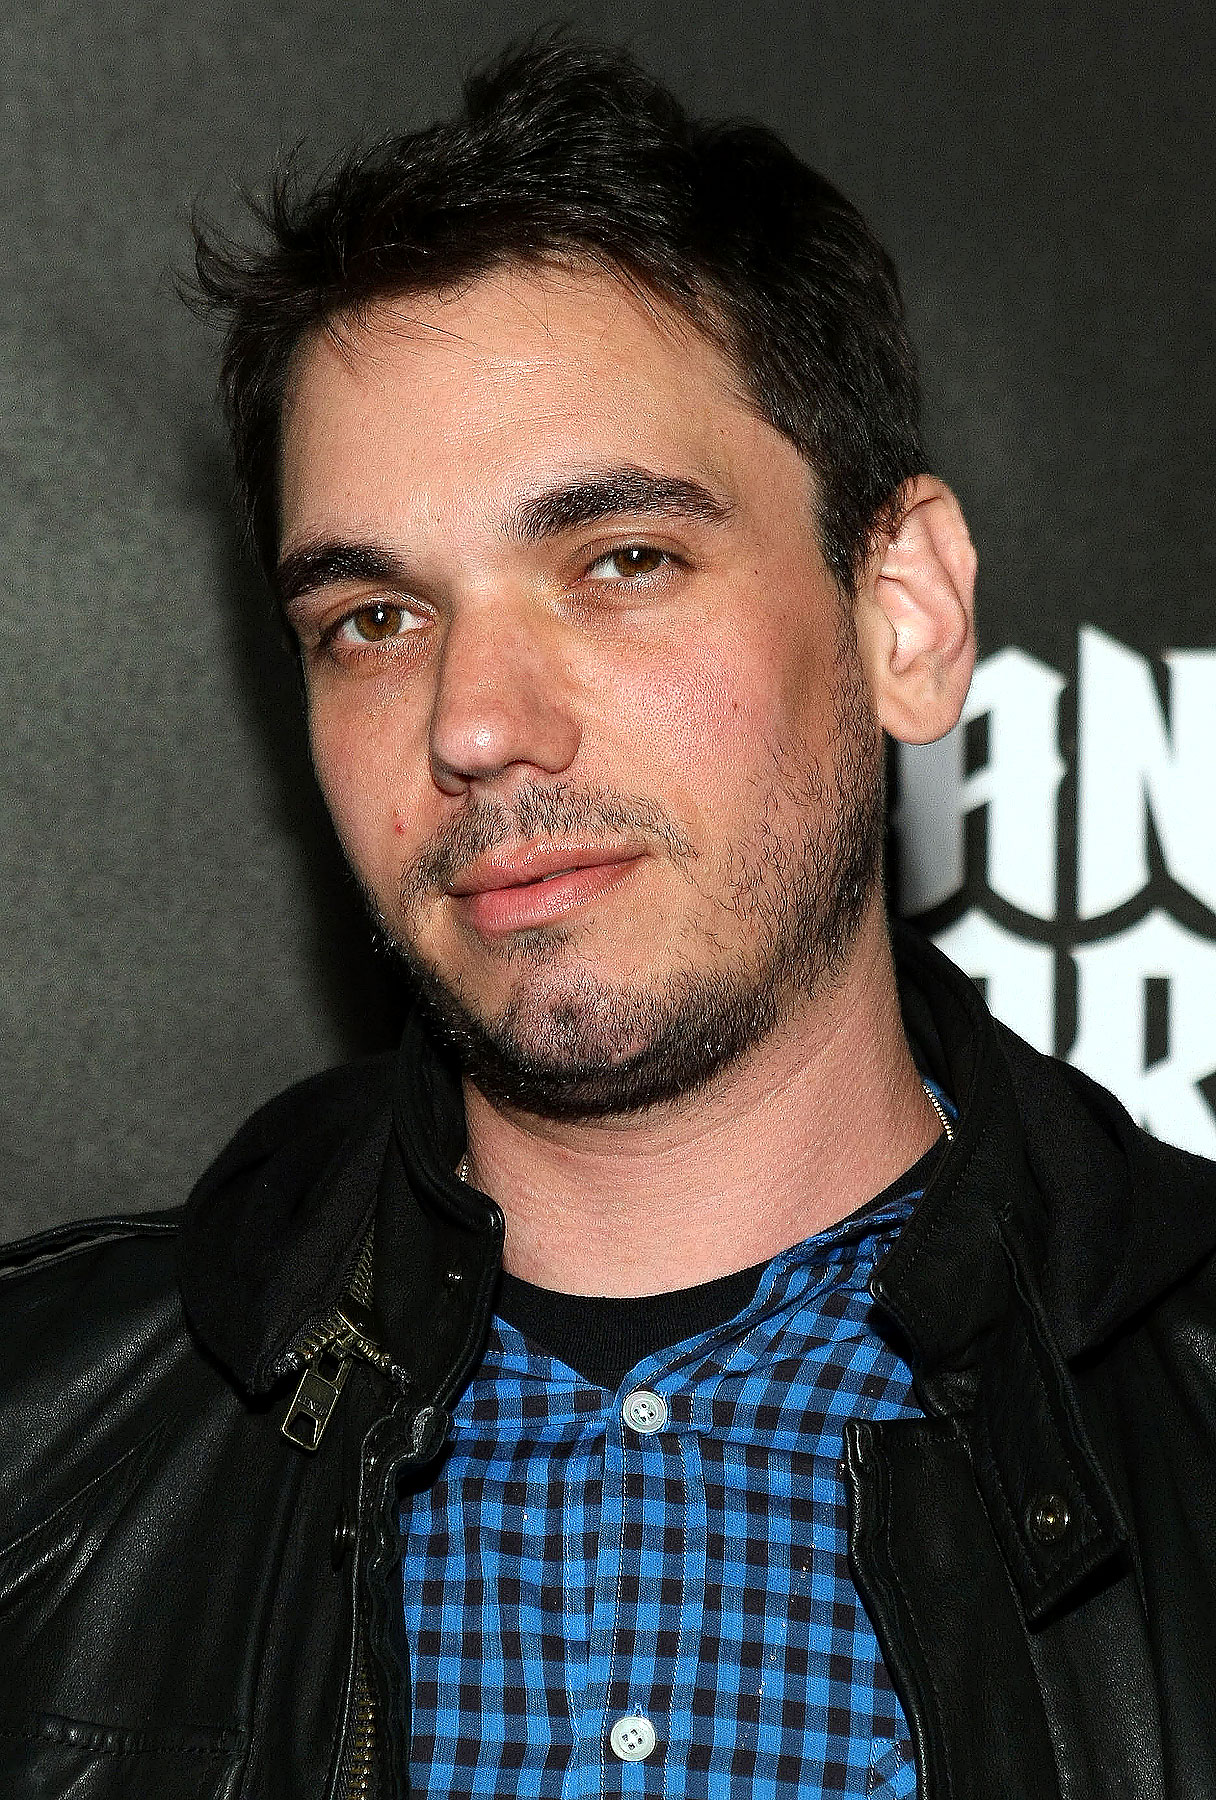 DJ AM's Death Ruled an Accident